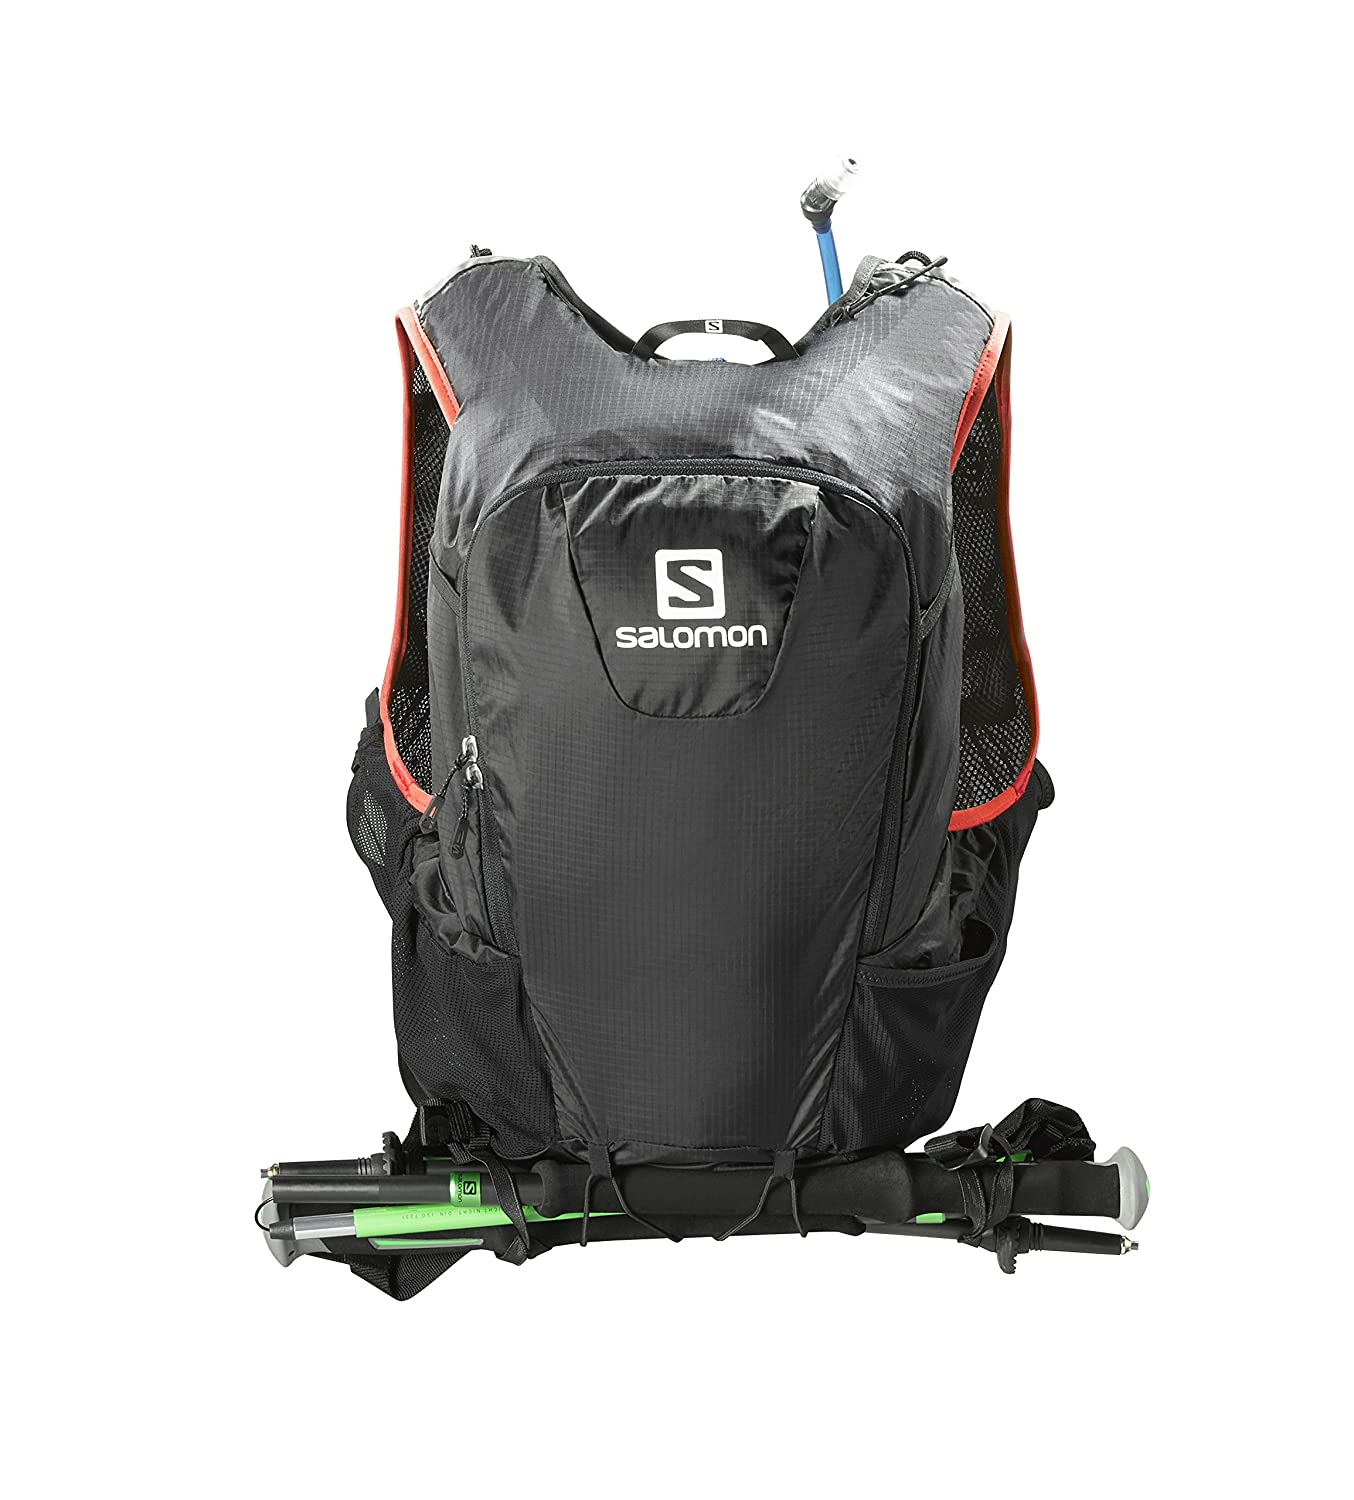 a4e4d2a3981 Amazon.com : Salomon Skin Pro 15 Set Backpack, Black/Bright Red : Sports &  Outdoors